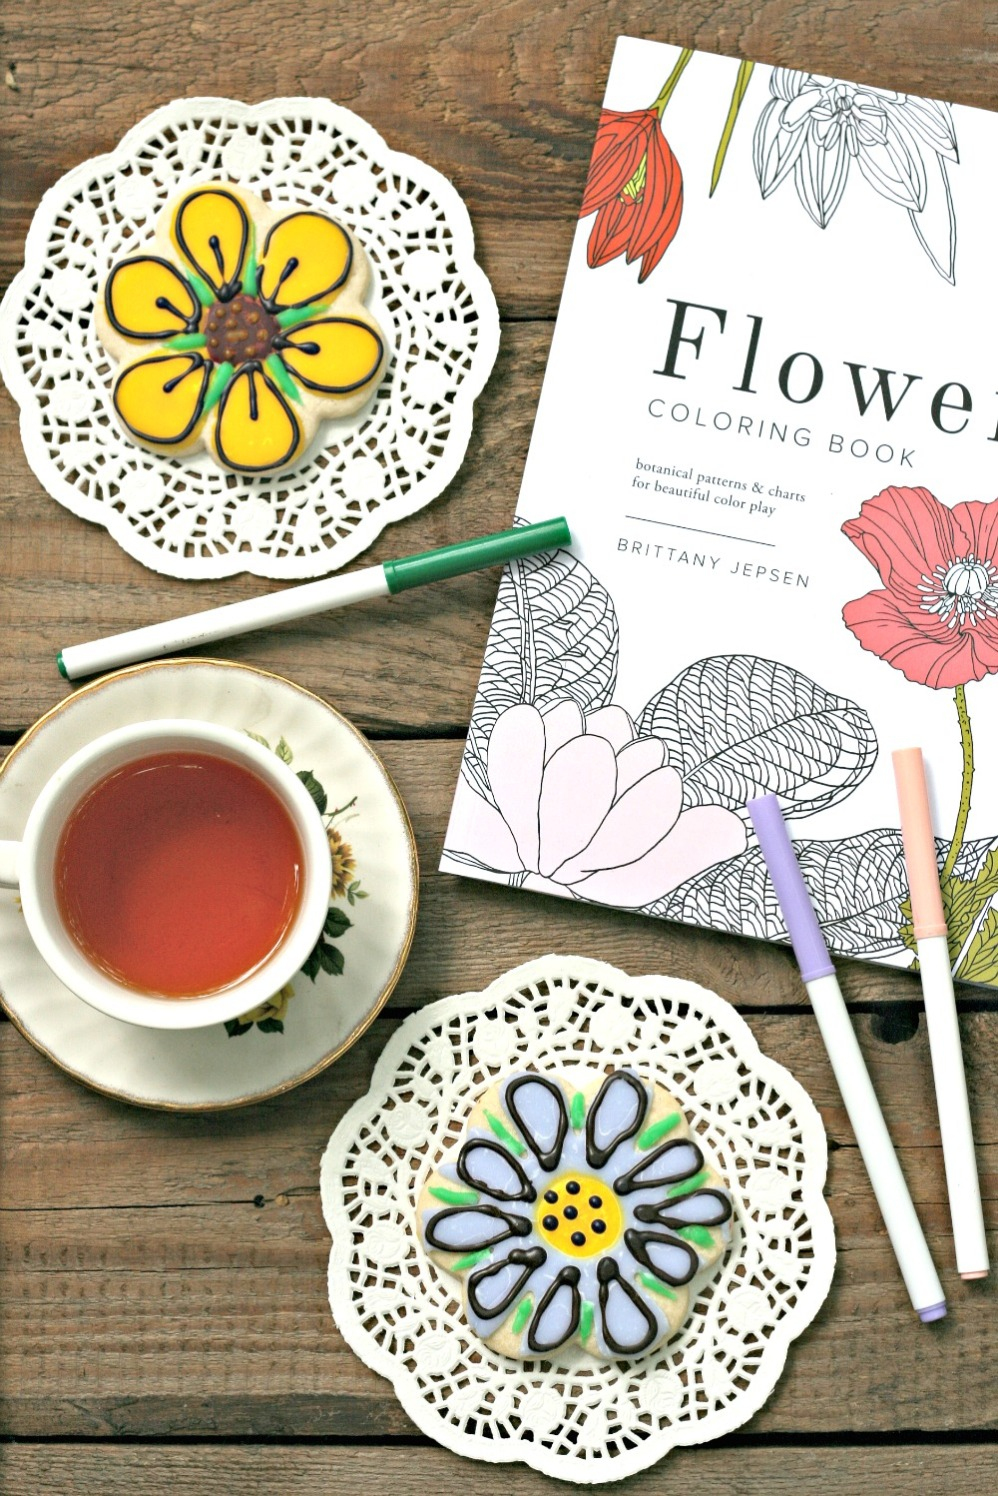 Flowers Coloring Book by Brittany Jepsen cookies